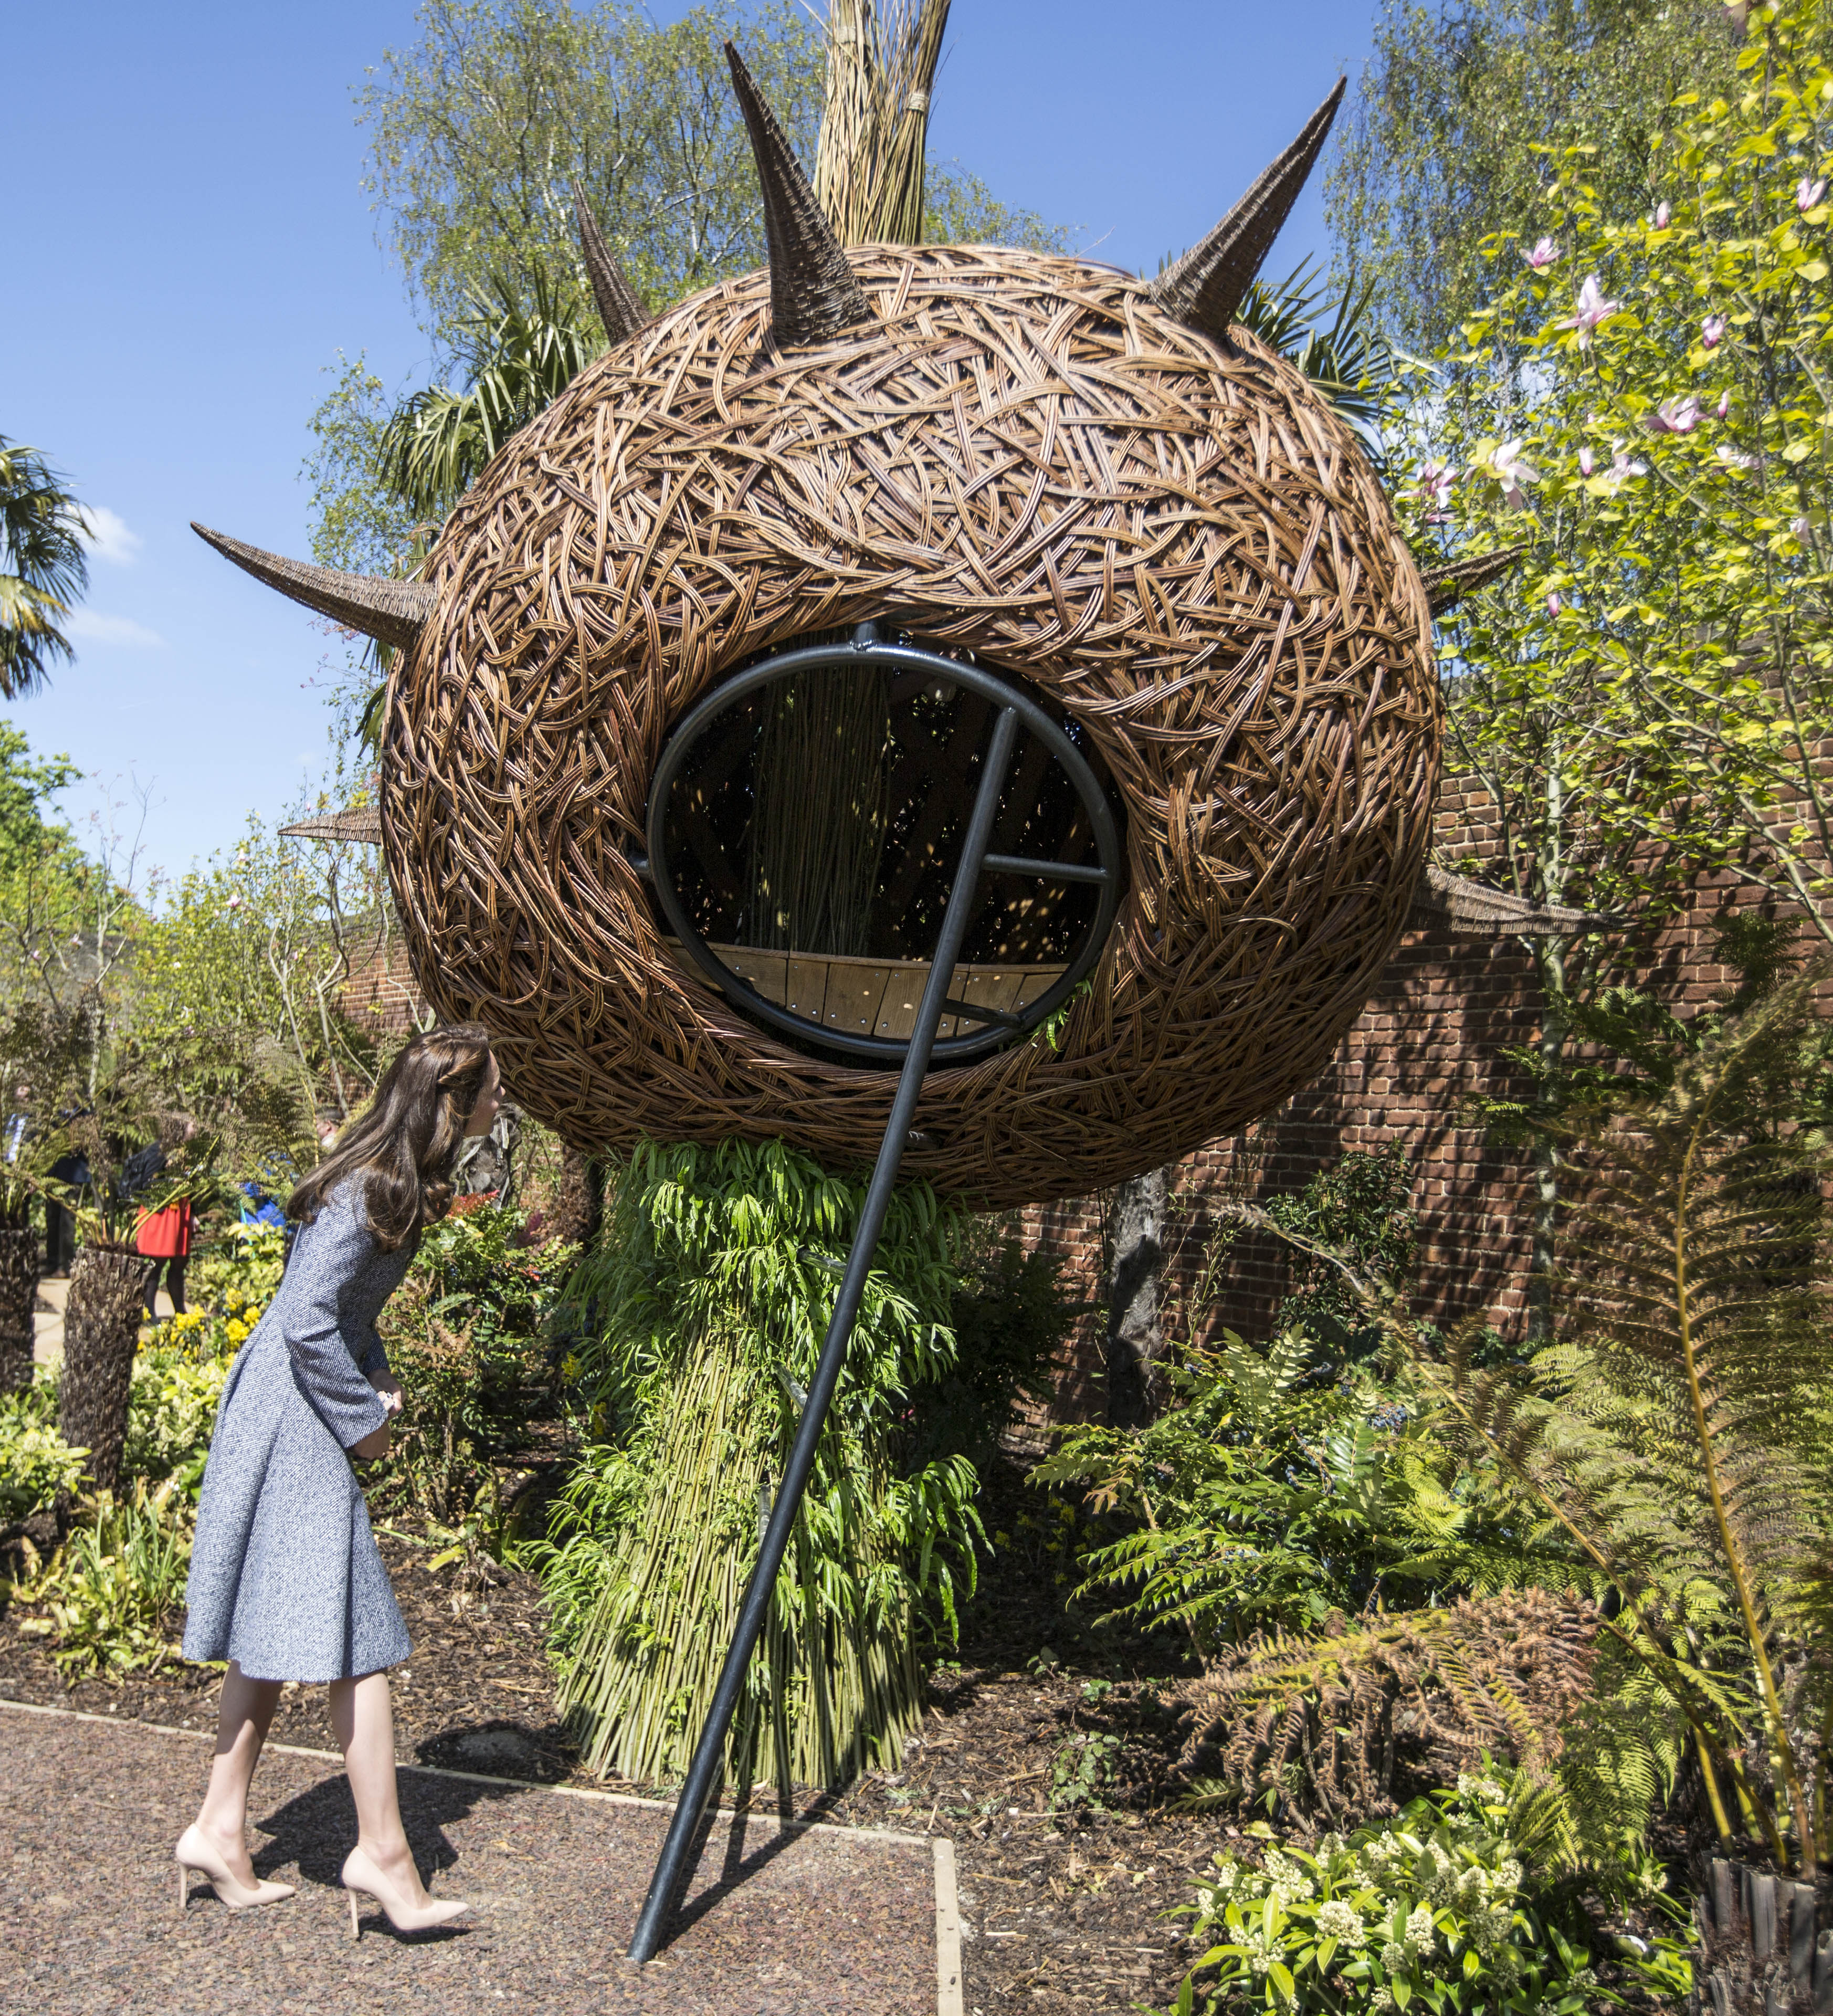 """LONDON, ENGLAND - MAY 04: Catherine, Duchess of Cambridge looks at a """"Dragons nest"""" play area as she officially opens The Magic Garden at Hampton Court Palace on May 4, 2016 in London, England. (Photo by Ri"""